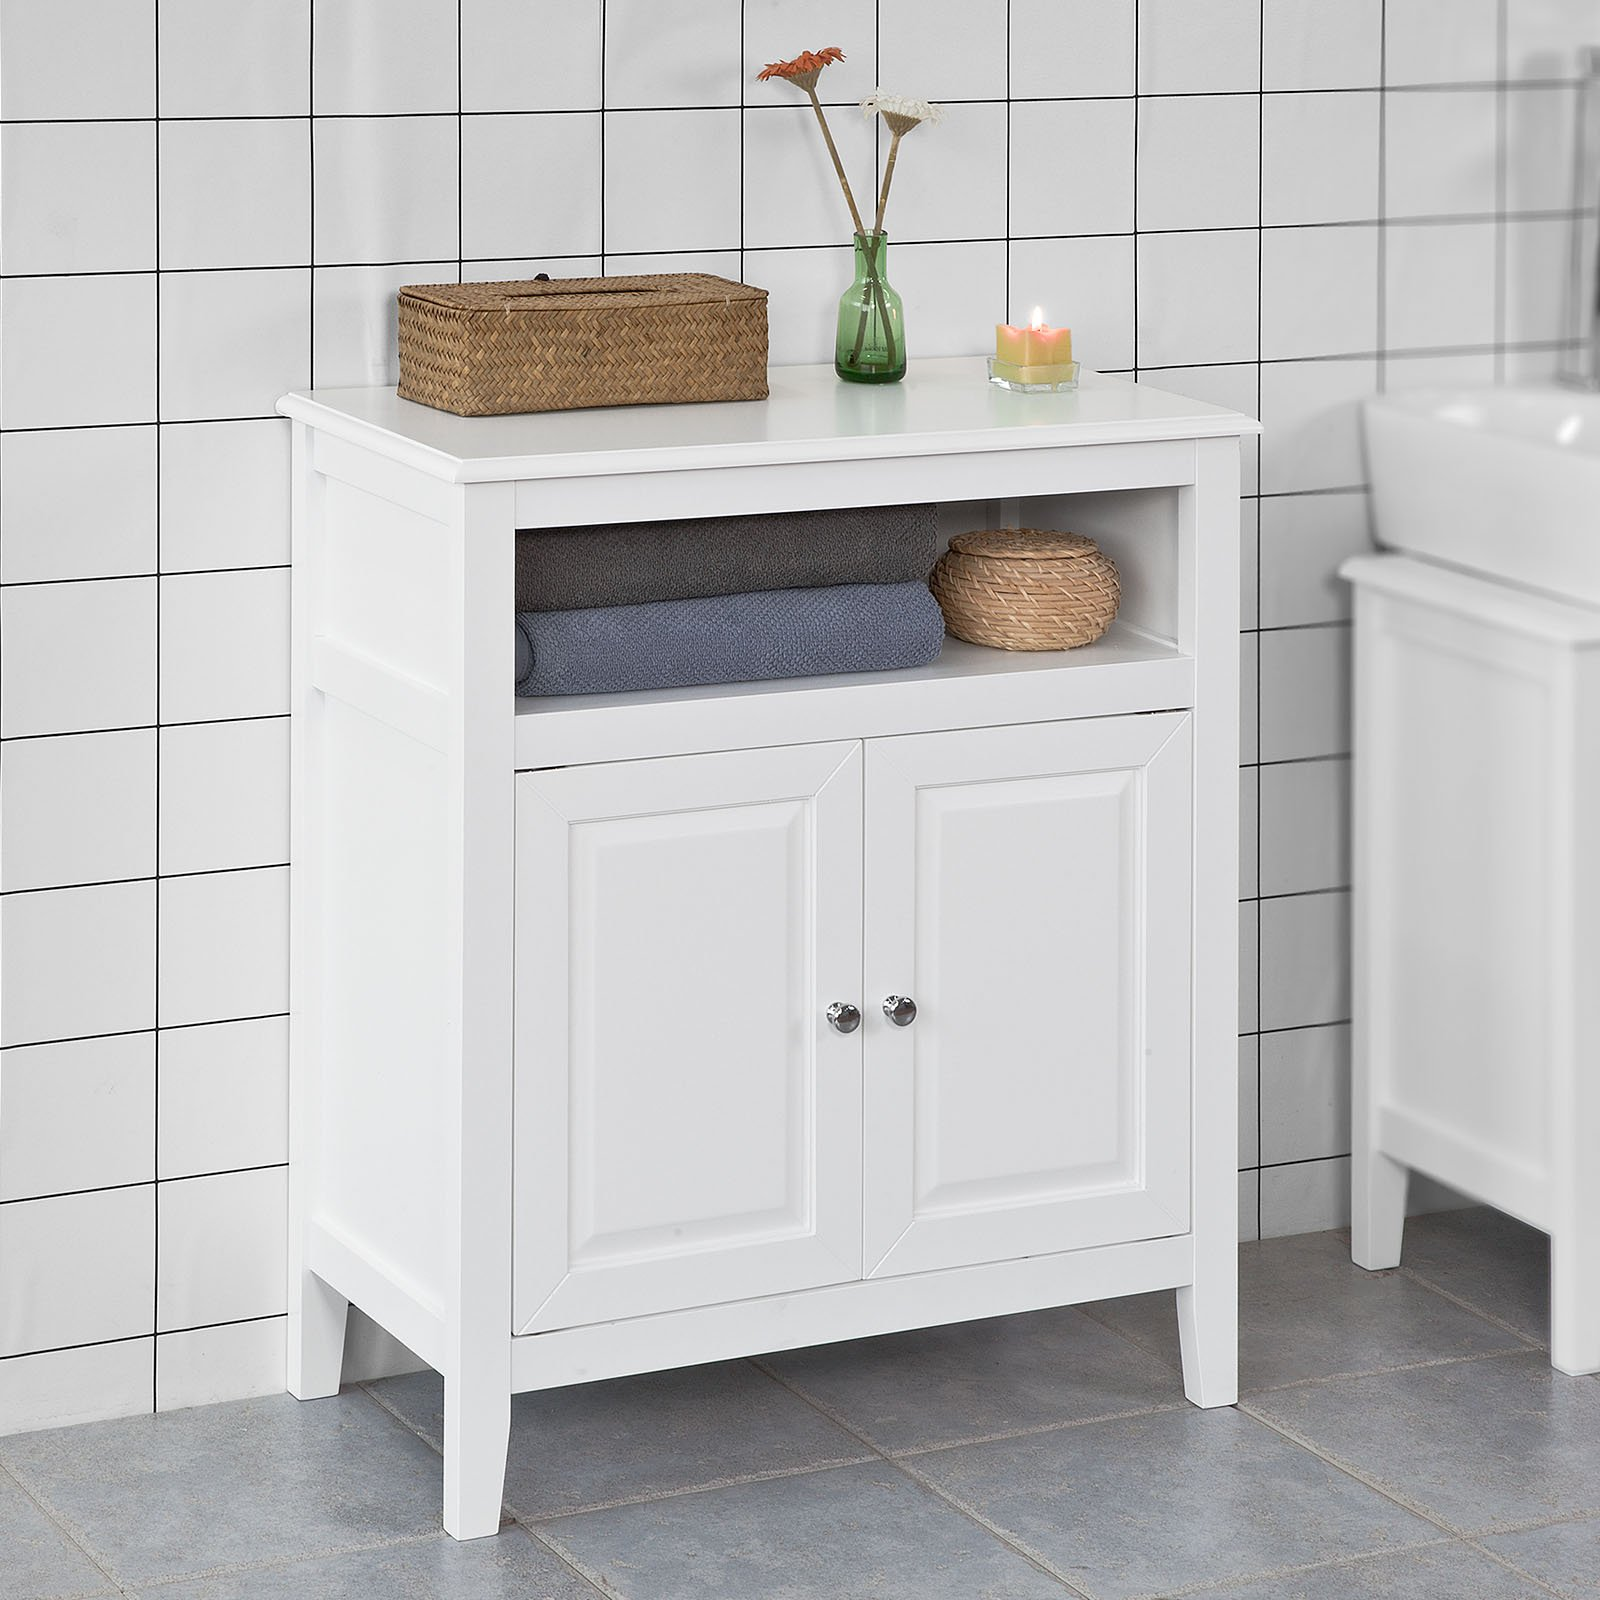 Haotian White Floor Standing Tall Bathroom Storage Cabinet with Drawers,Linen Tower Bath Cabinet, Cabinet with Shelf(FRG204-W)